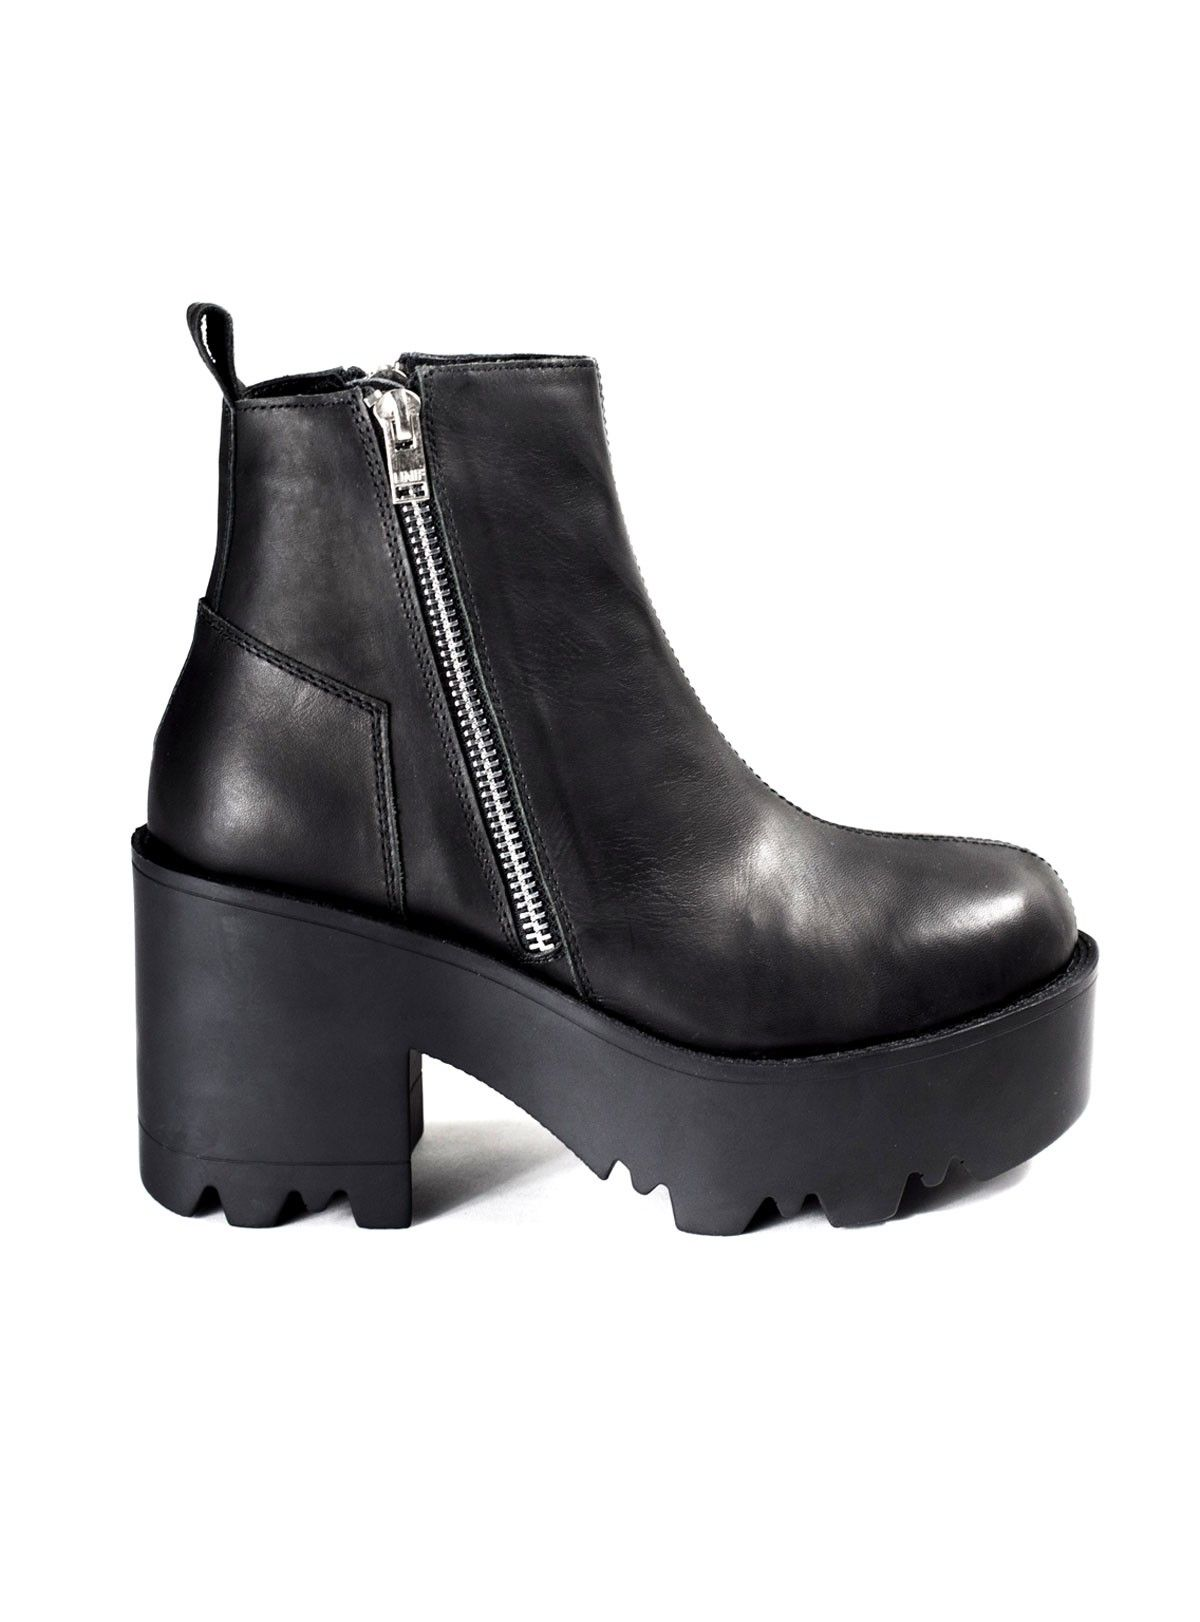 e45bd9ba8193 Unif Rival Leather Platform Boot. Find this Pin and more on shoes ...